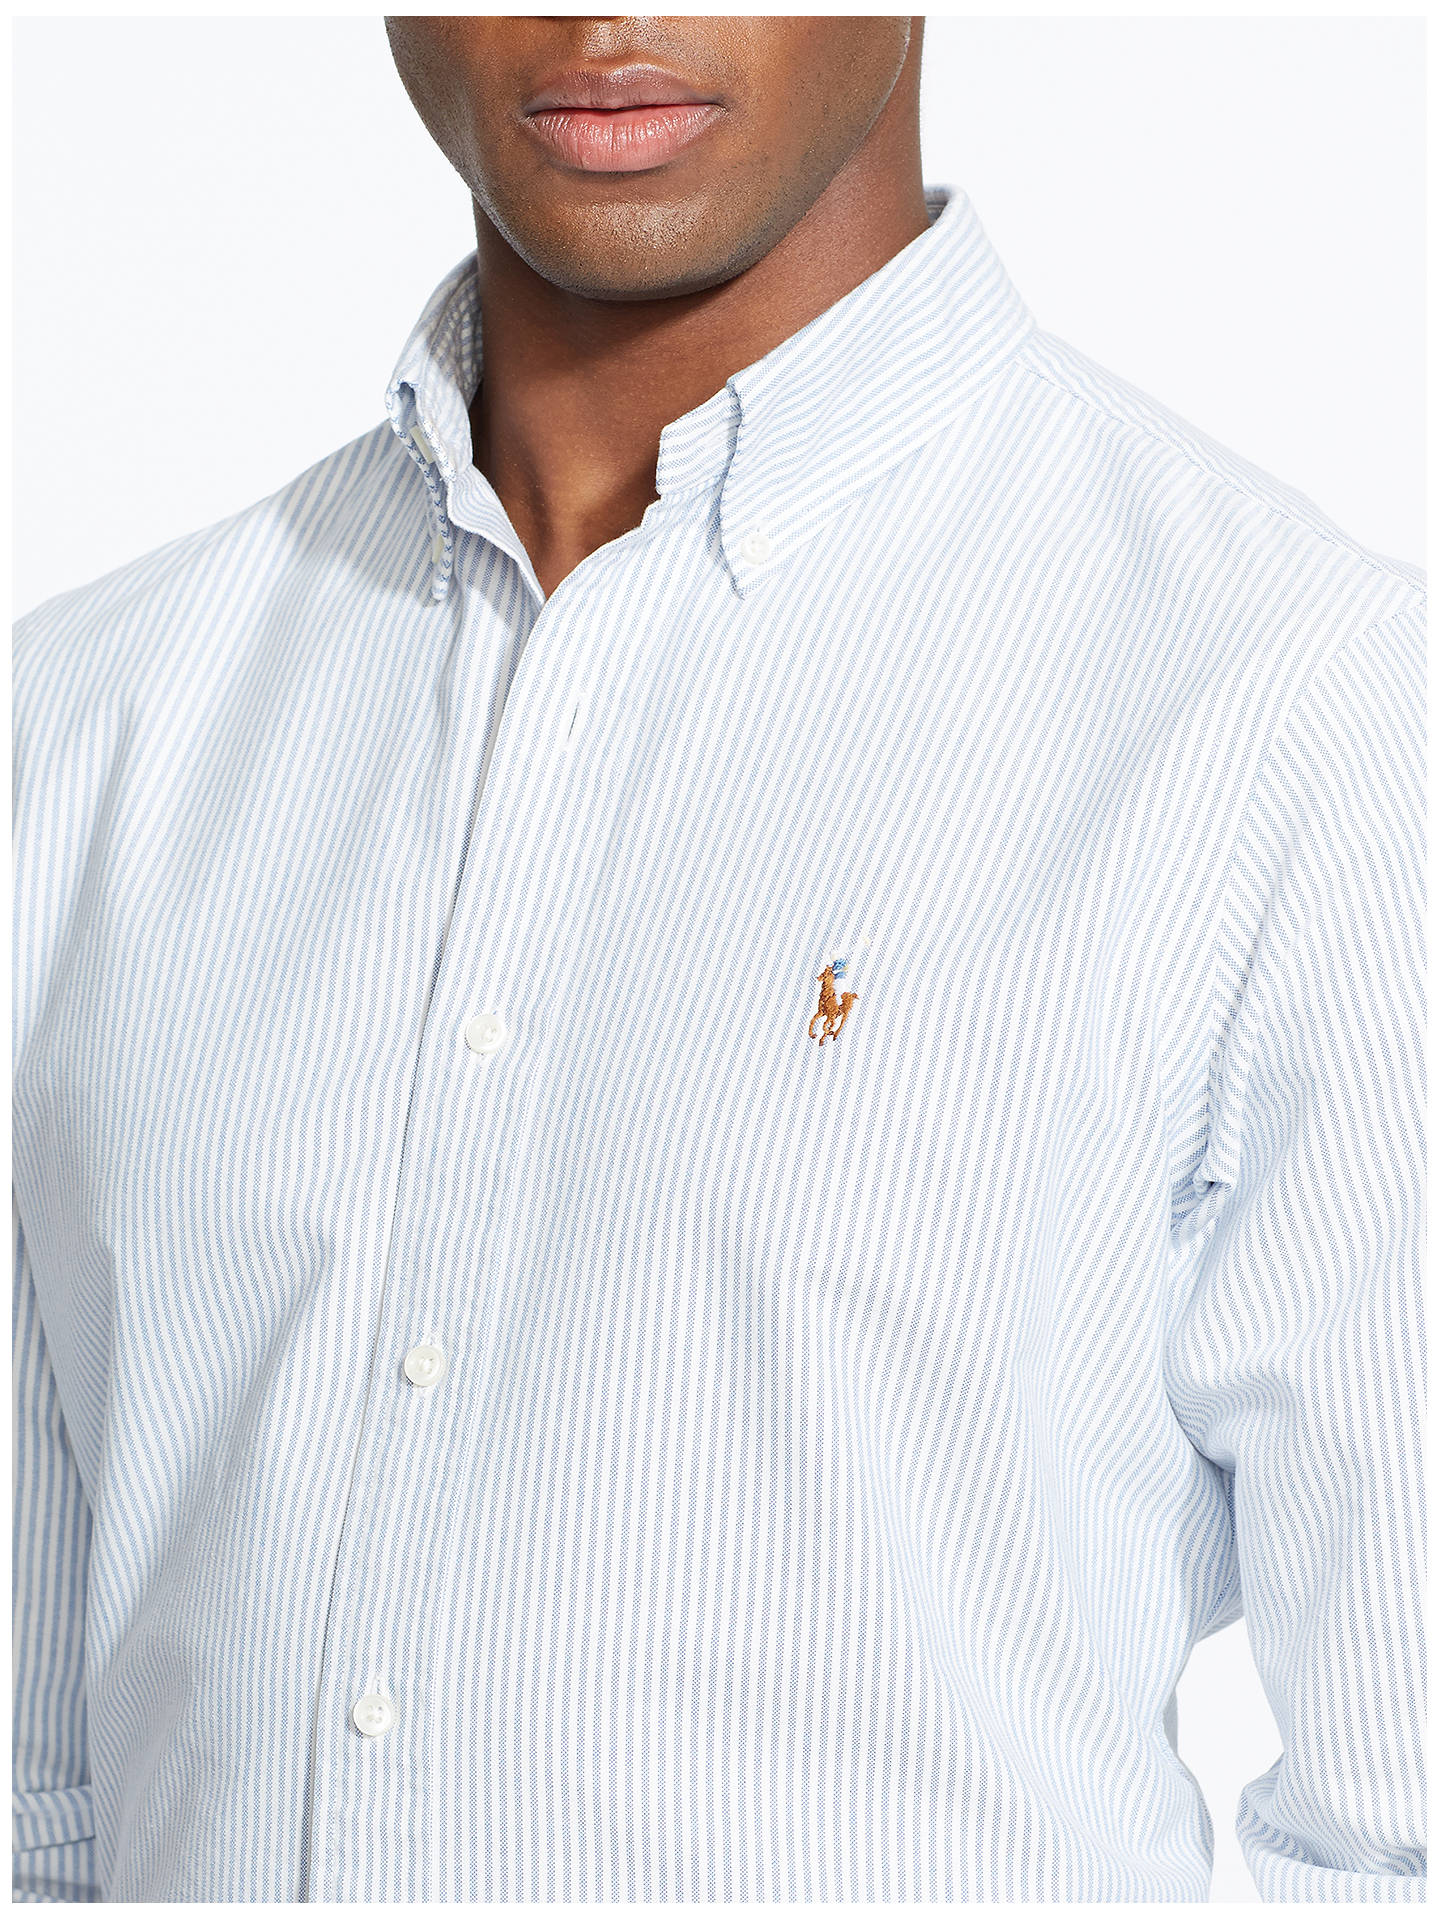 Lauren Polo ShirtBluewhite Ralph Striped Oxford eHYWbED92I